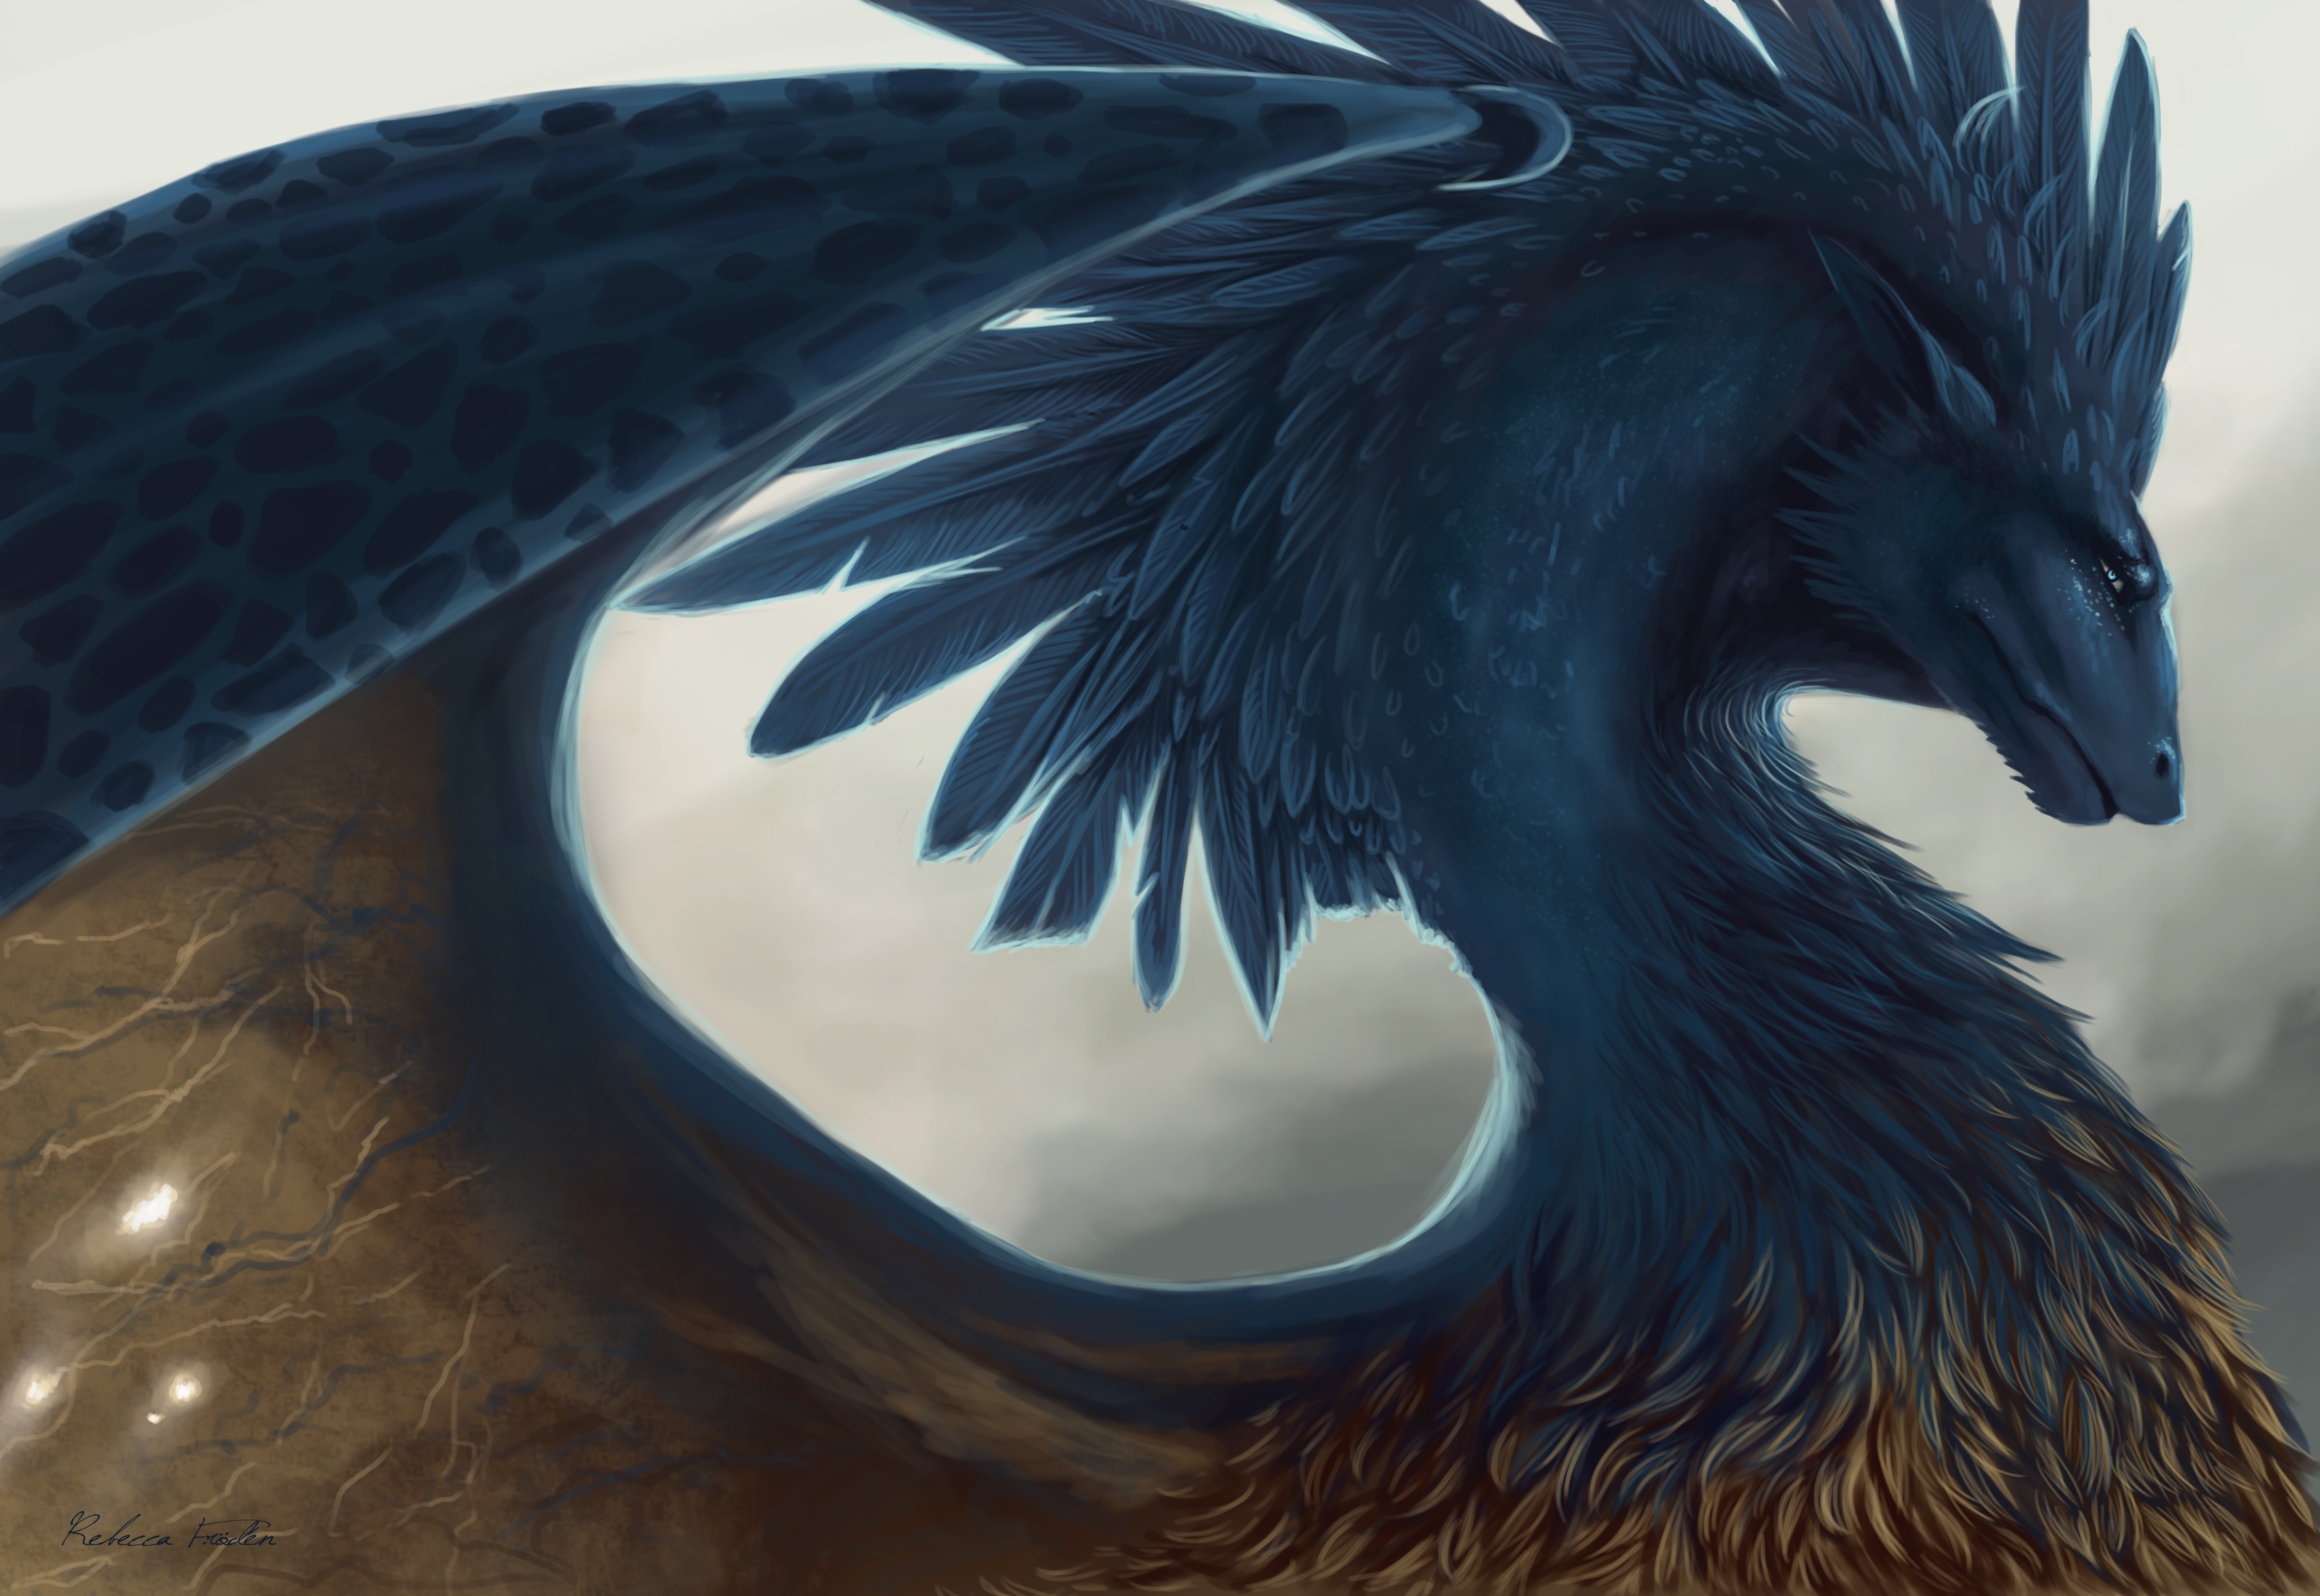 111626 download wallpaper Dragon, Fantasy, Art, Feather screensavers and pictures for free